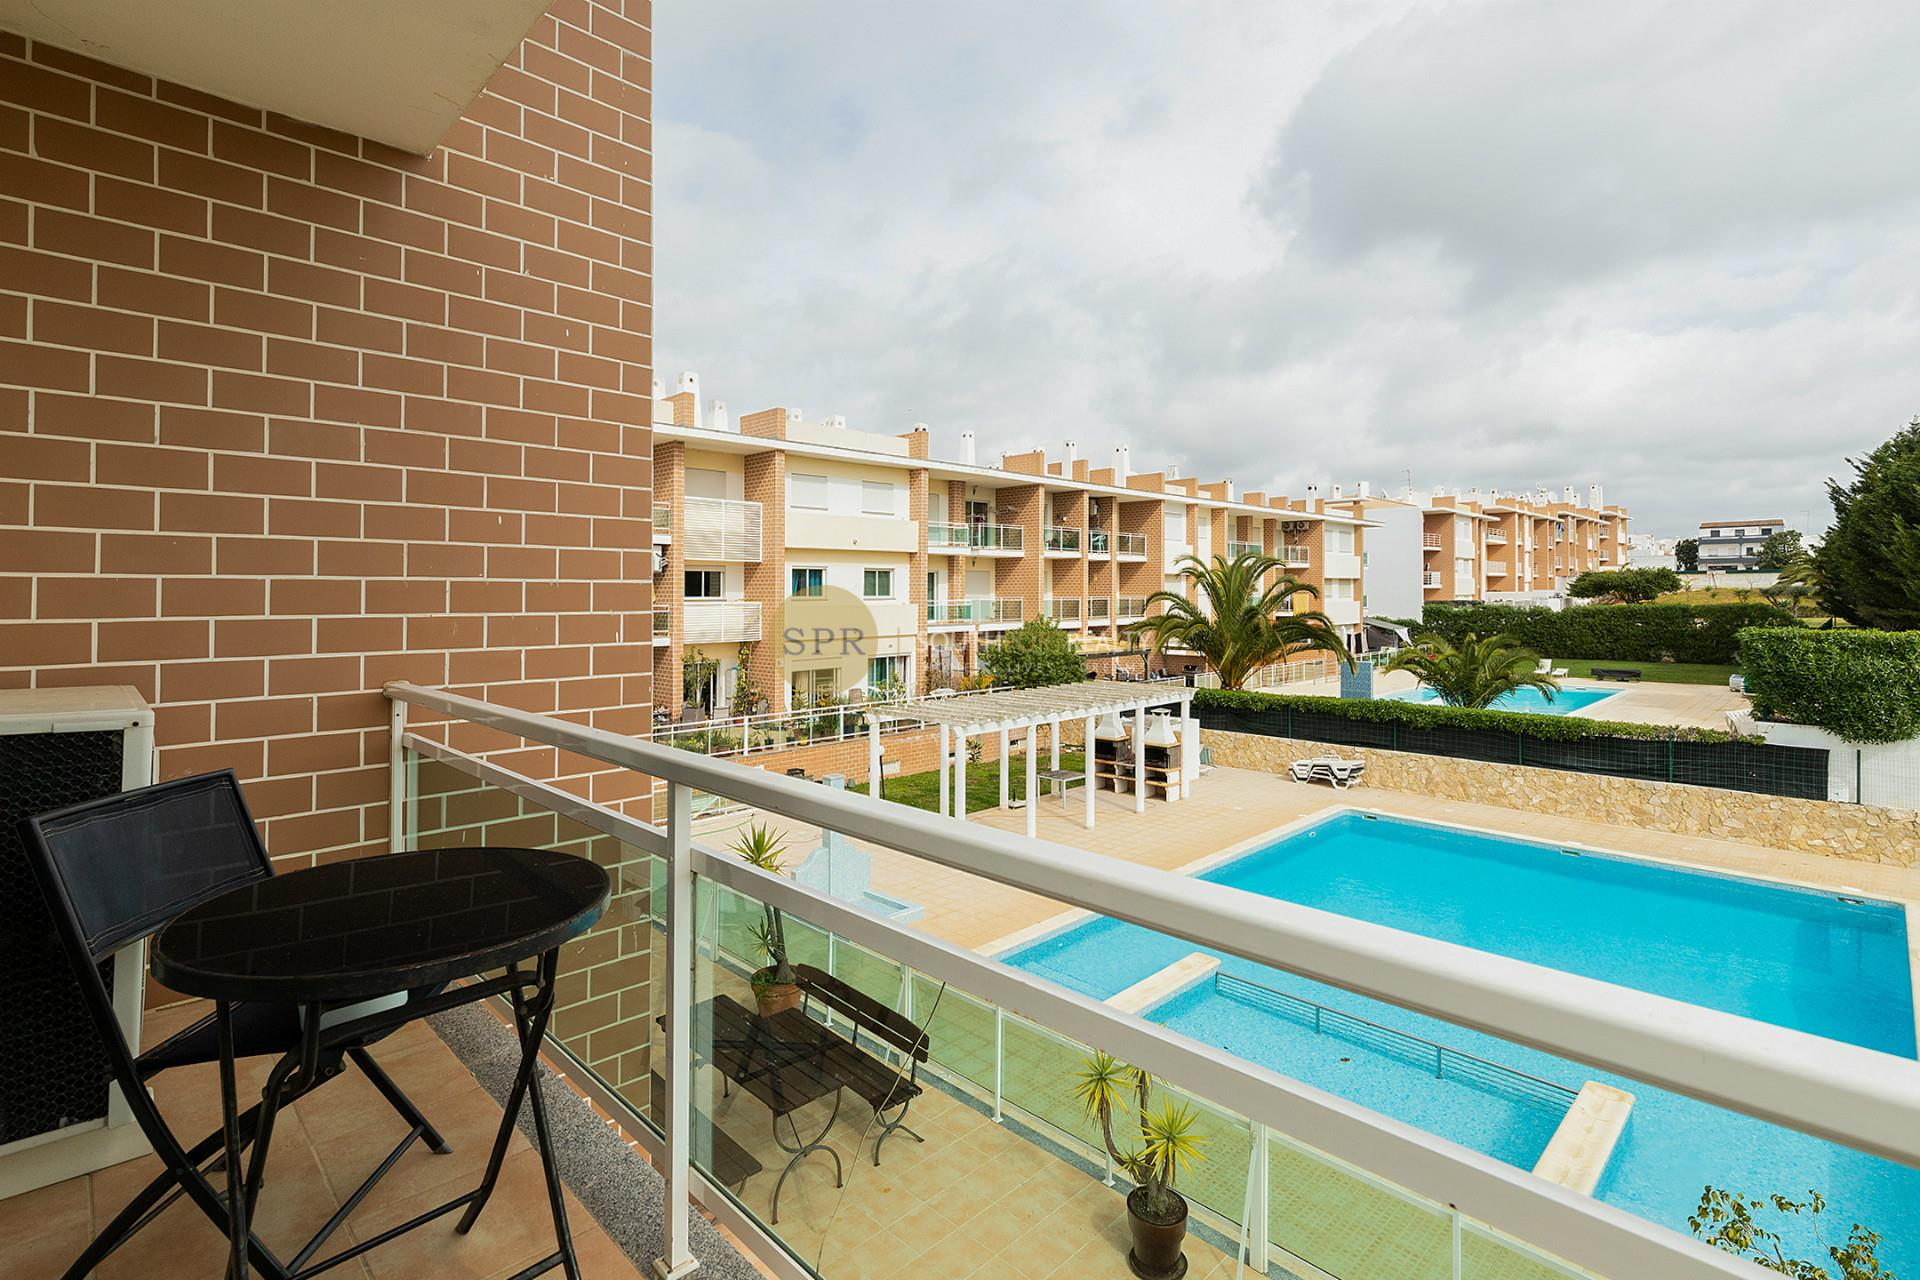 Excellent 3 bedroom apartment in Alvor